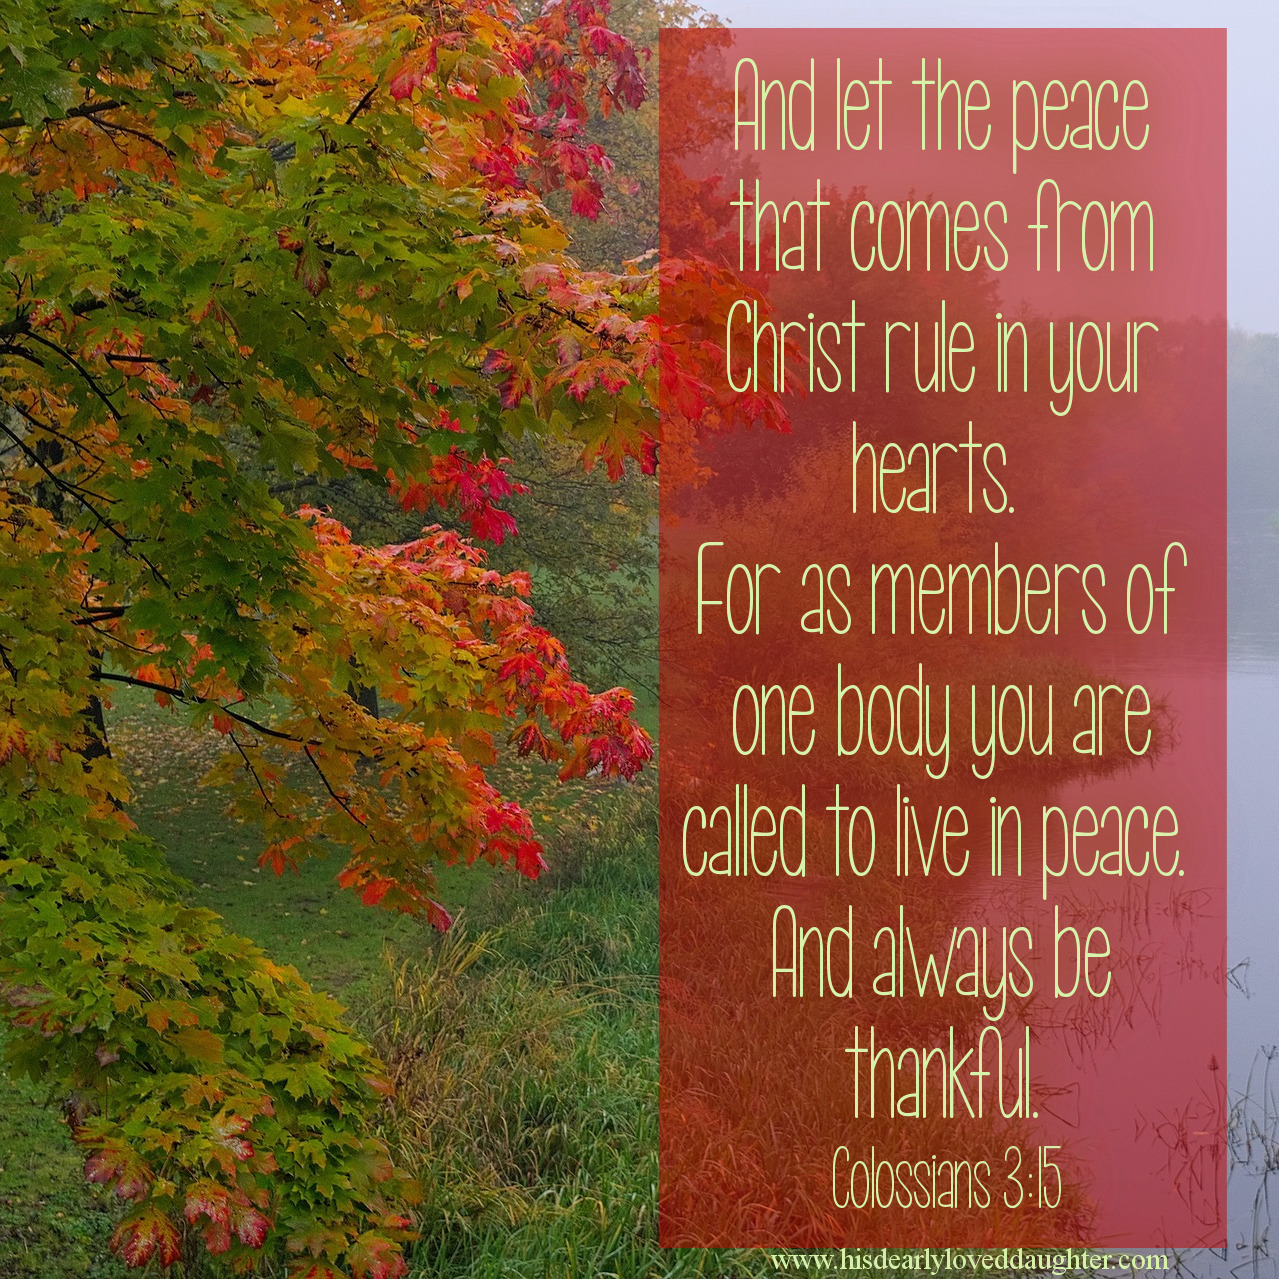 And let the peace that comes from Christ rule in your hearts. For as members of one body you are called to live in peace. And always be thankful. Colossians 3:15 #Thanksgiving #Verses #truth #Scripture #WordOfGod #BibleVerse